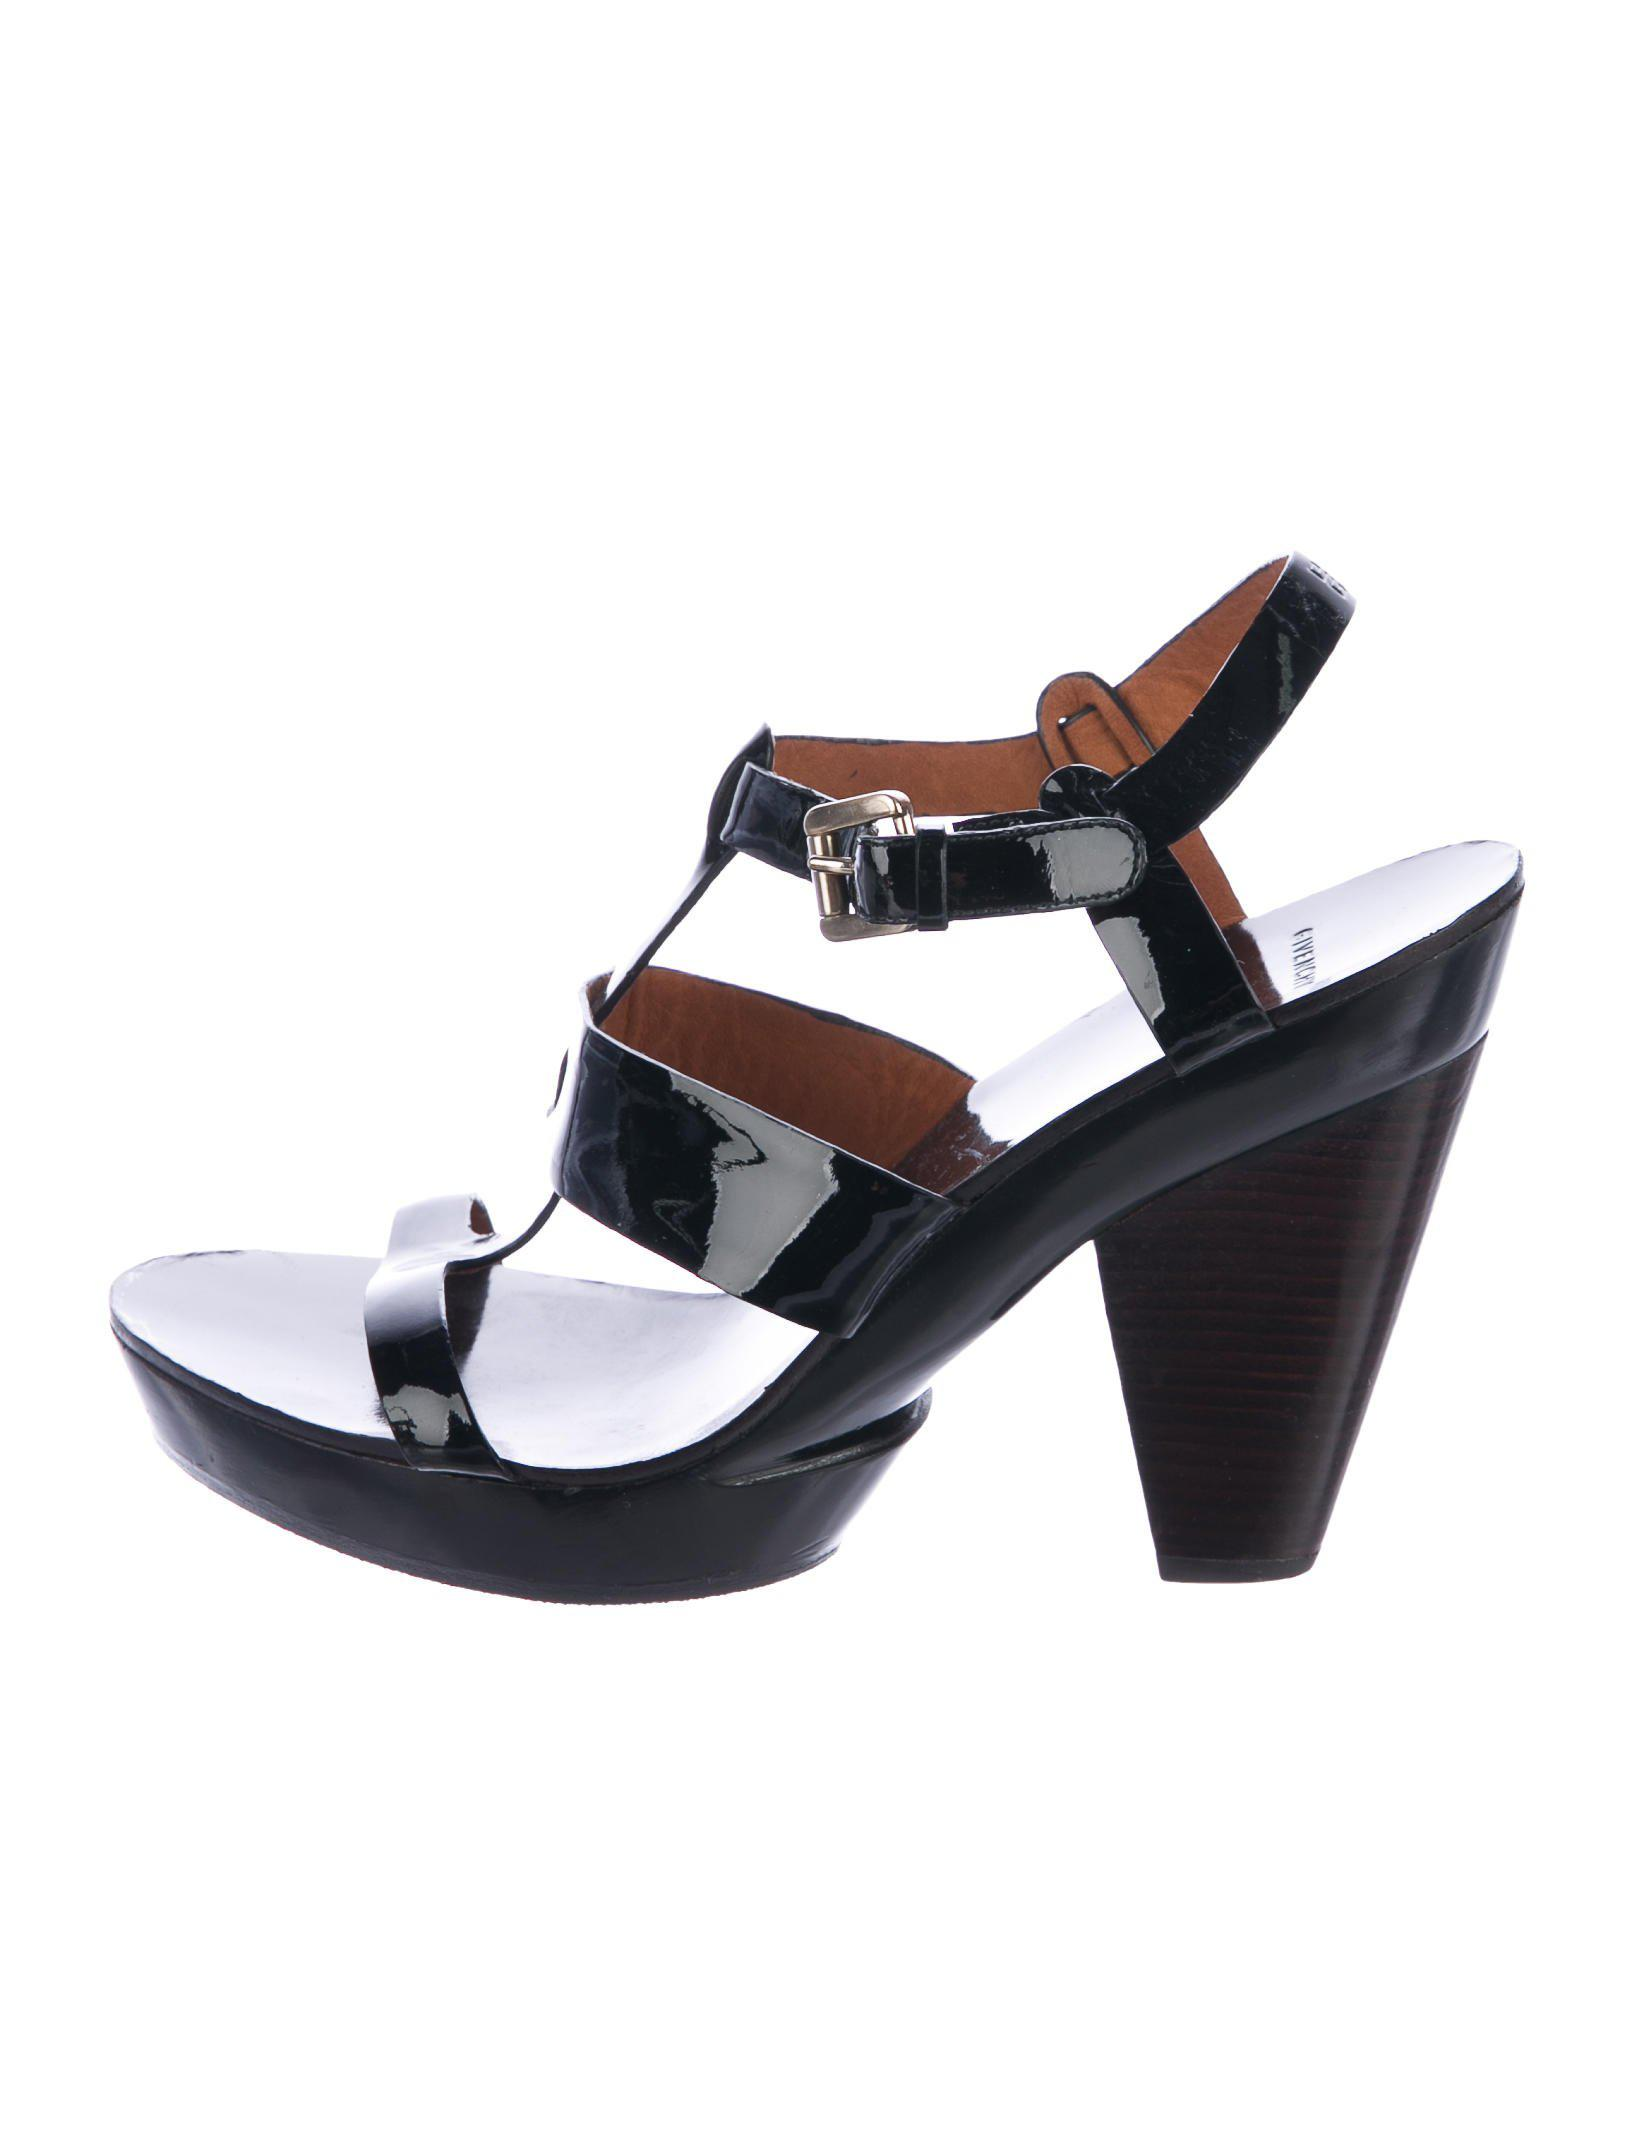 Givenchy Platform Patent Leather Sandals free shipping footlocker pictures good selling for sale extremely for sale z4NhIJ51